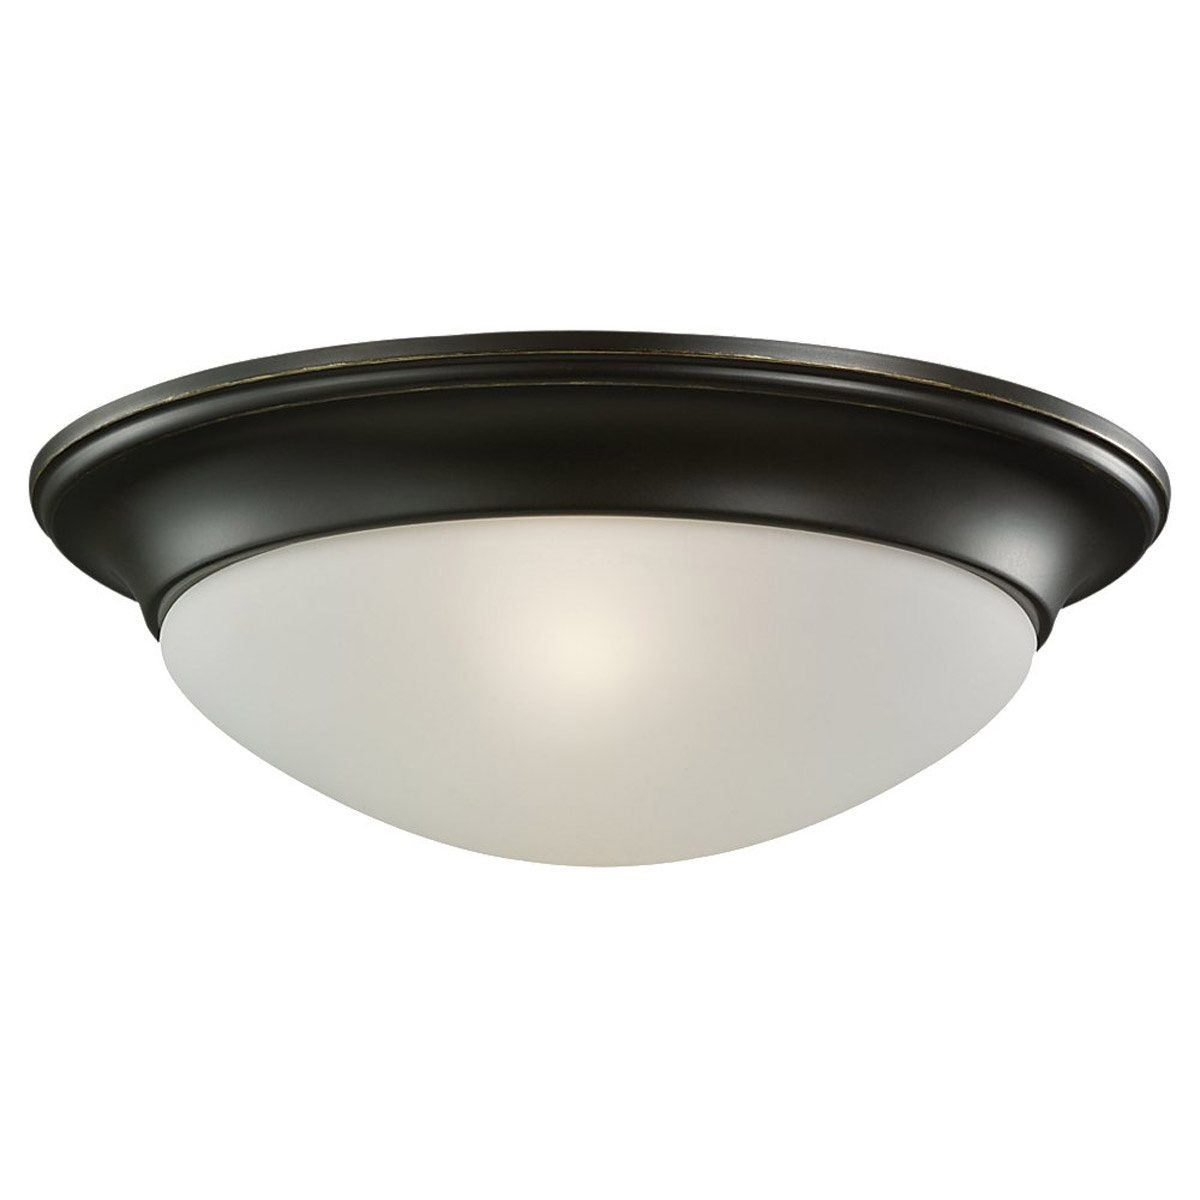 Sea Gull Lighting Nash 1 Light Flush Mount in Heirloom Bronze 79434BLE-782